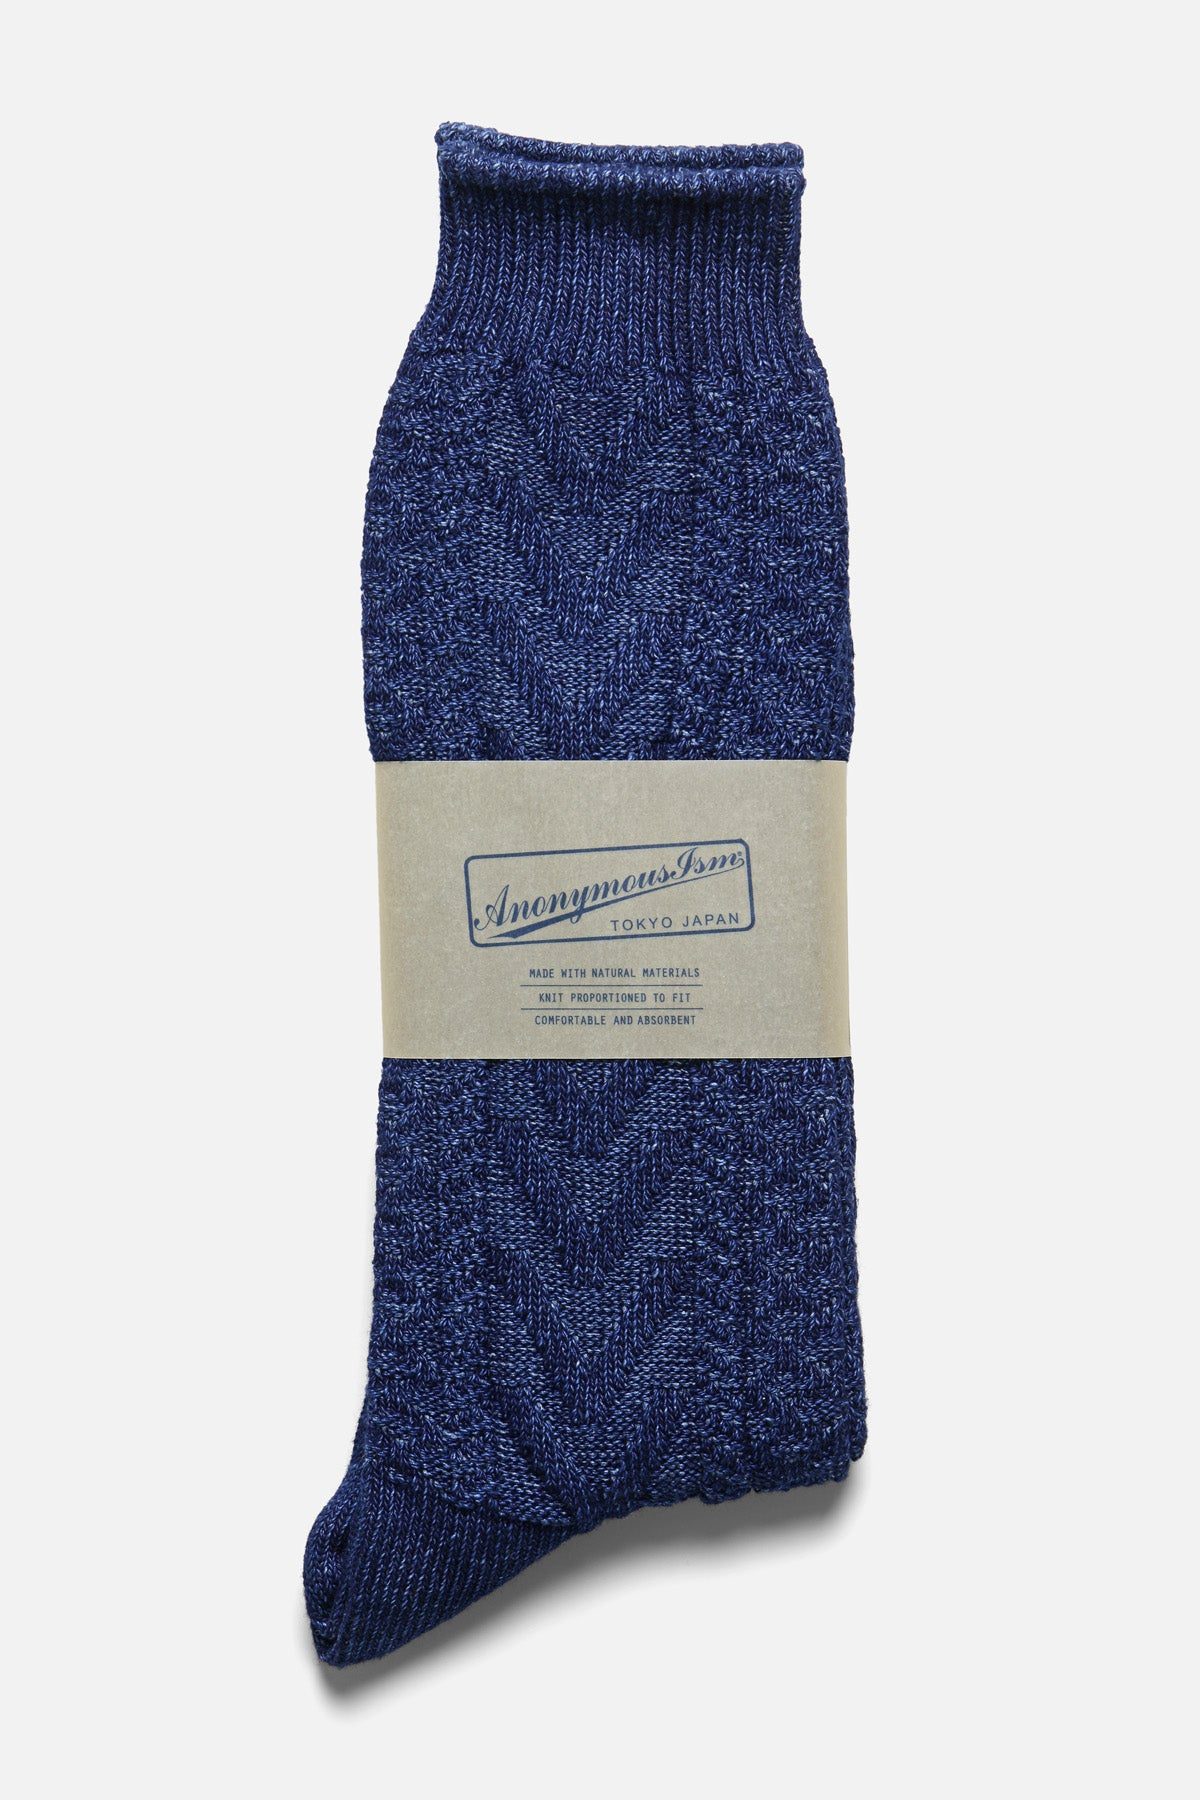 ANONYMOUS ISM - INDIGO RIB CREW IN LIGHT NATURAL INDIGO - Fortune Goods